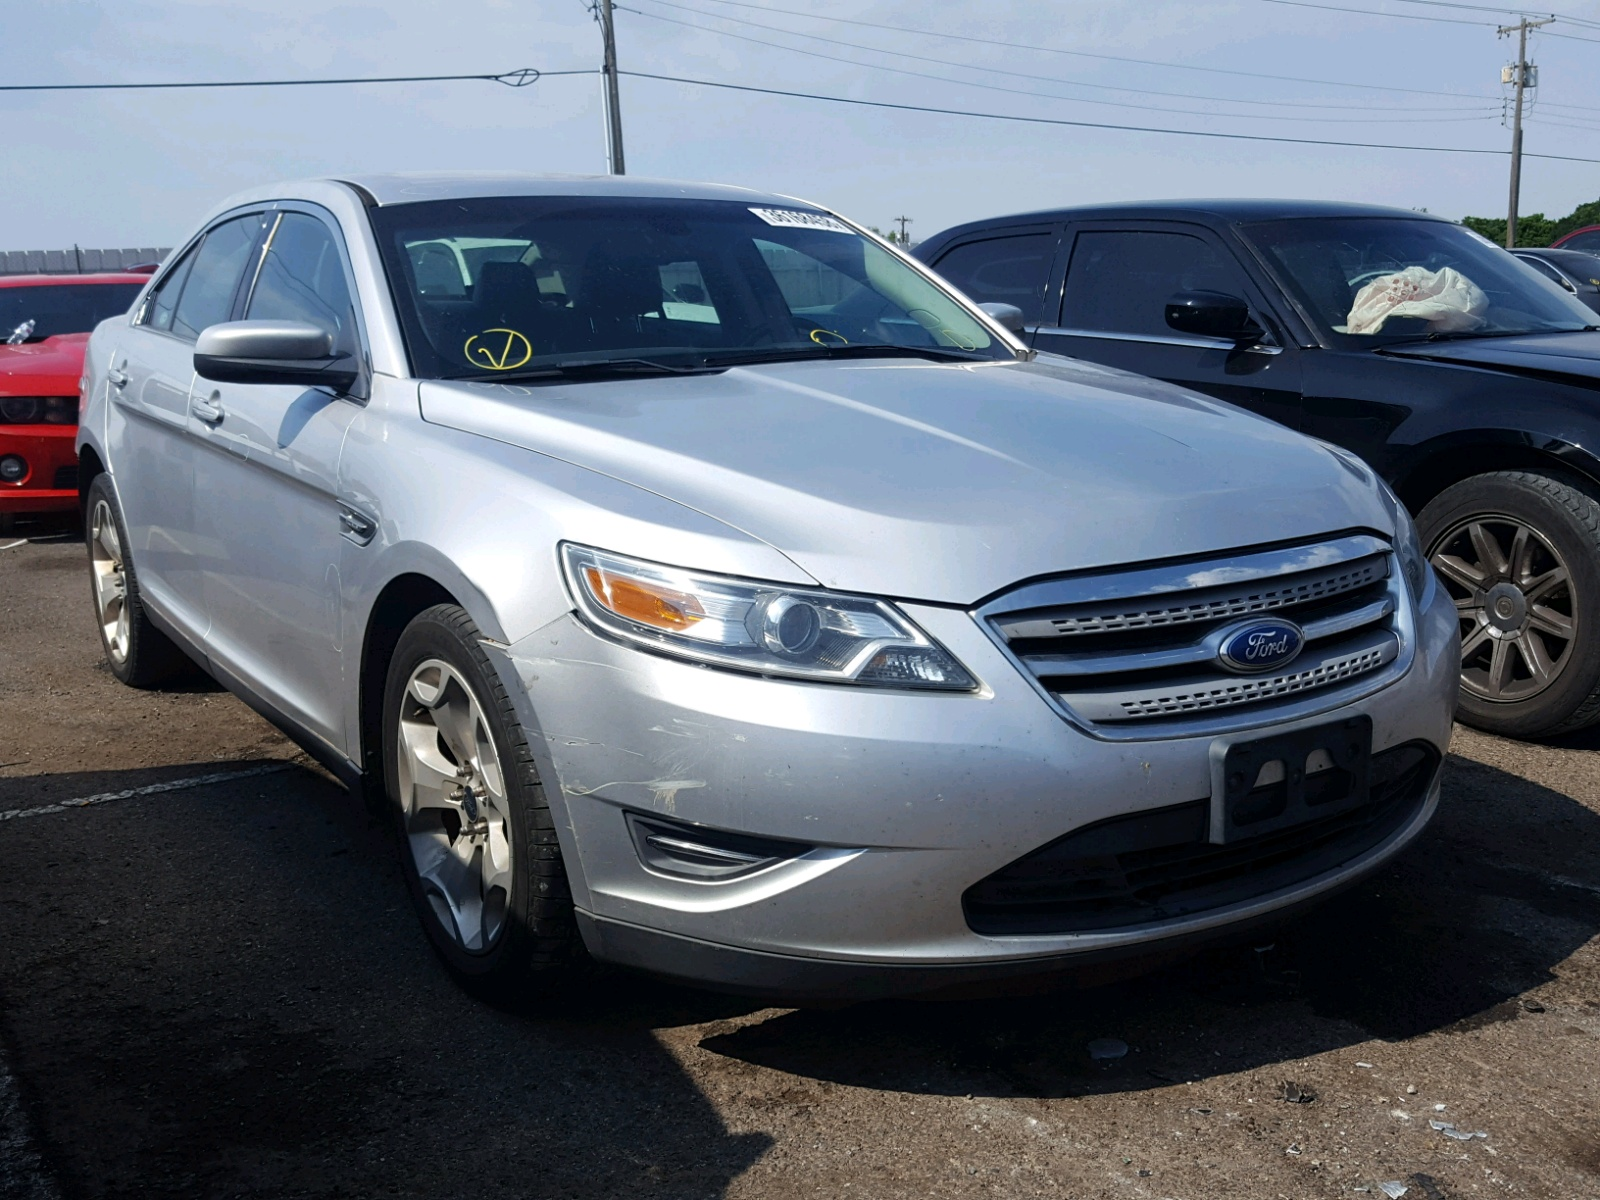 2012 Ford Taurus SEL for sale at Copart Oklahoma City OK Lot